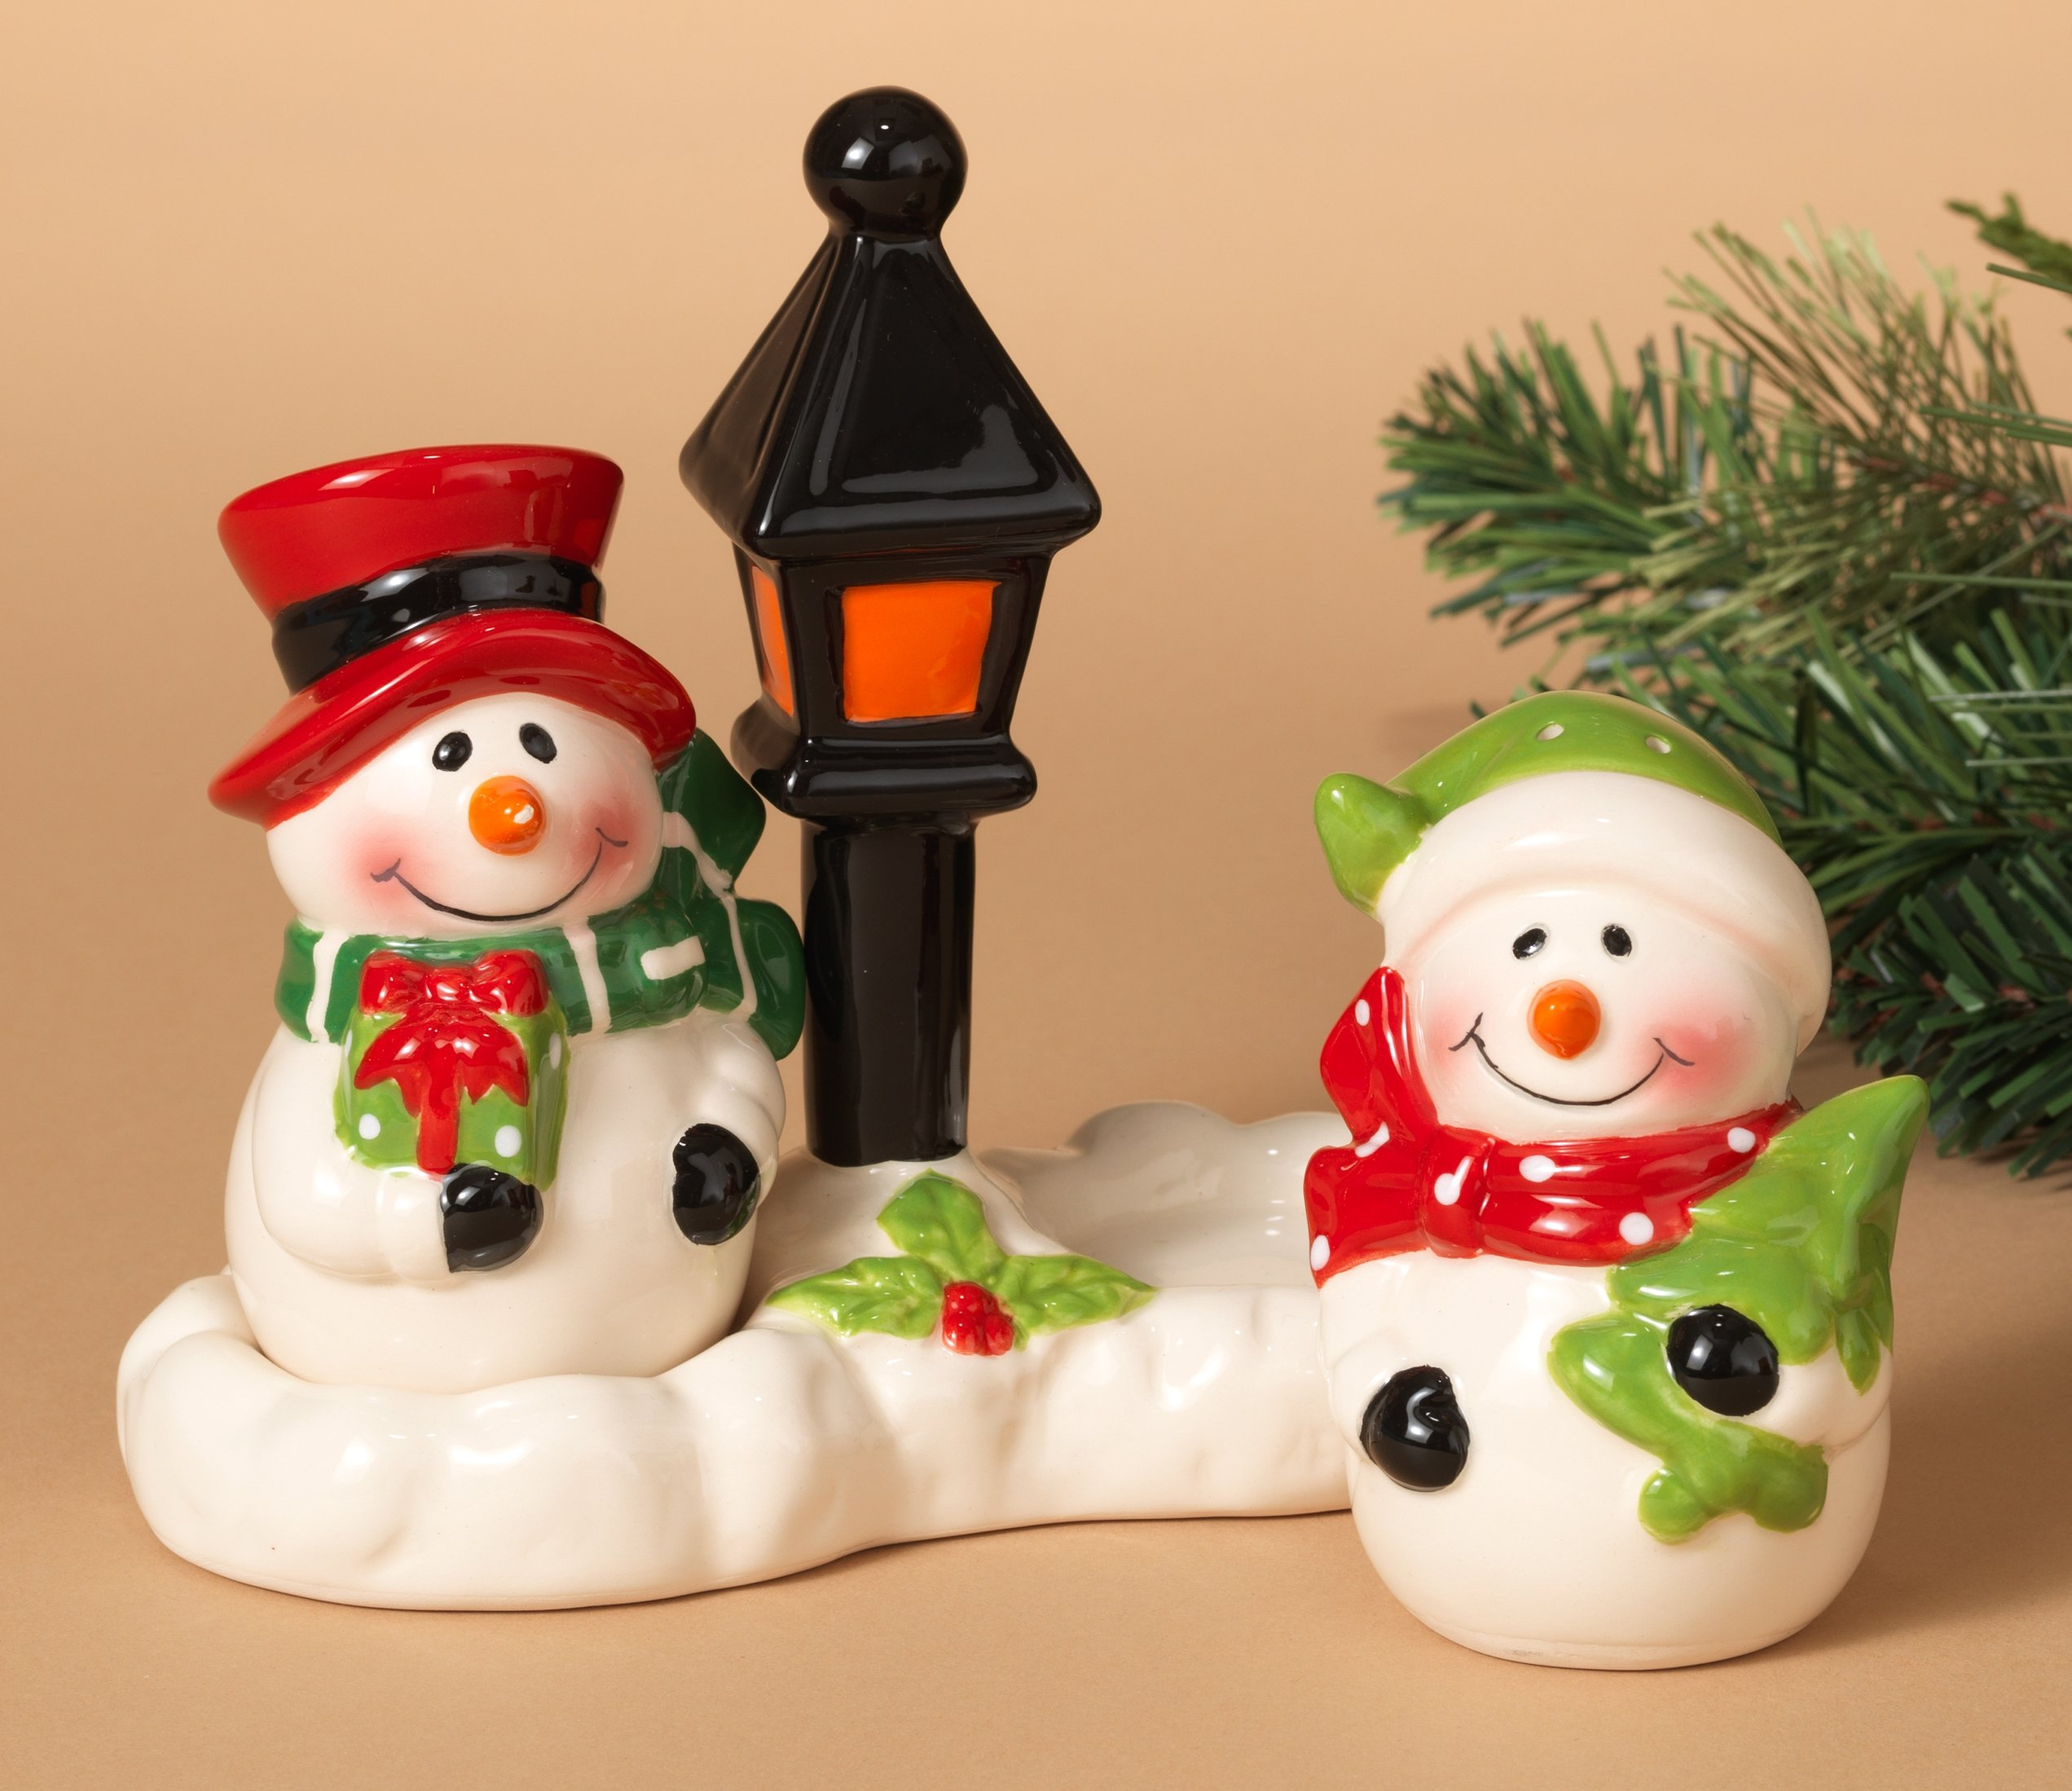 Adorable Christmas Holiday Snowmen Salt and Pepper Shaker Set ~ 3 pc ~ Ceramic ~ 3'' Hand Painted